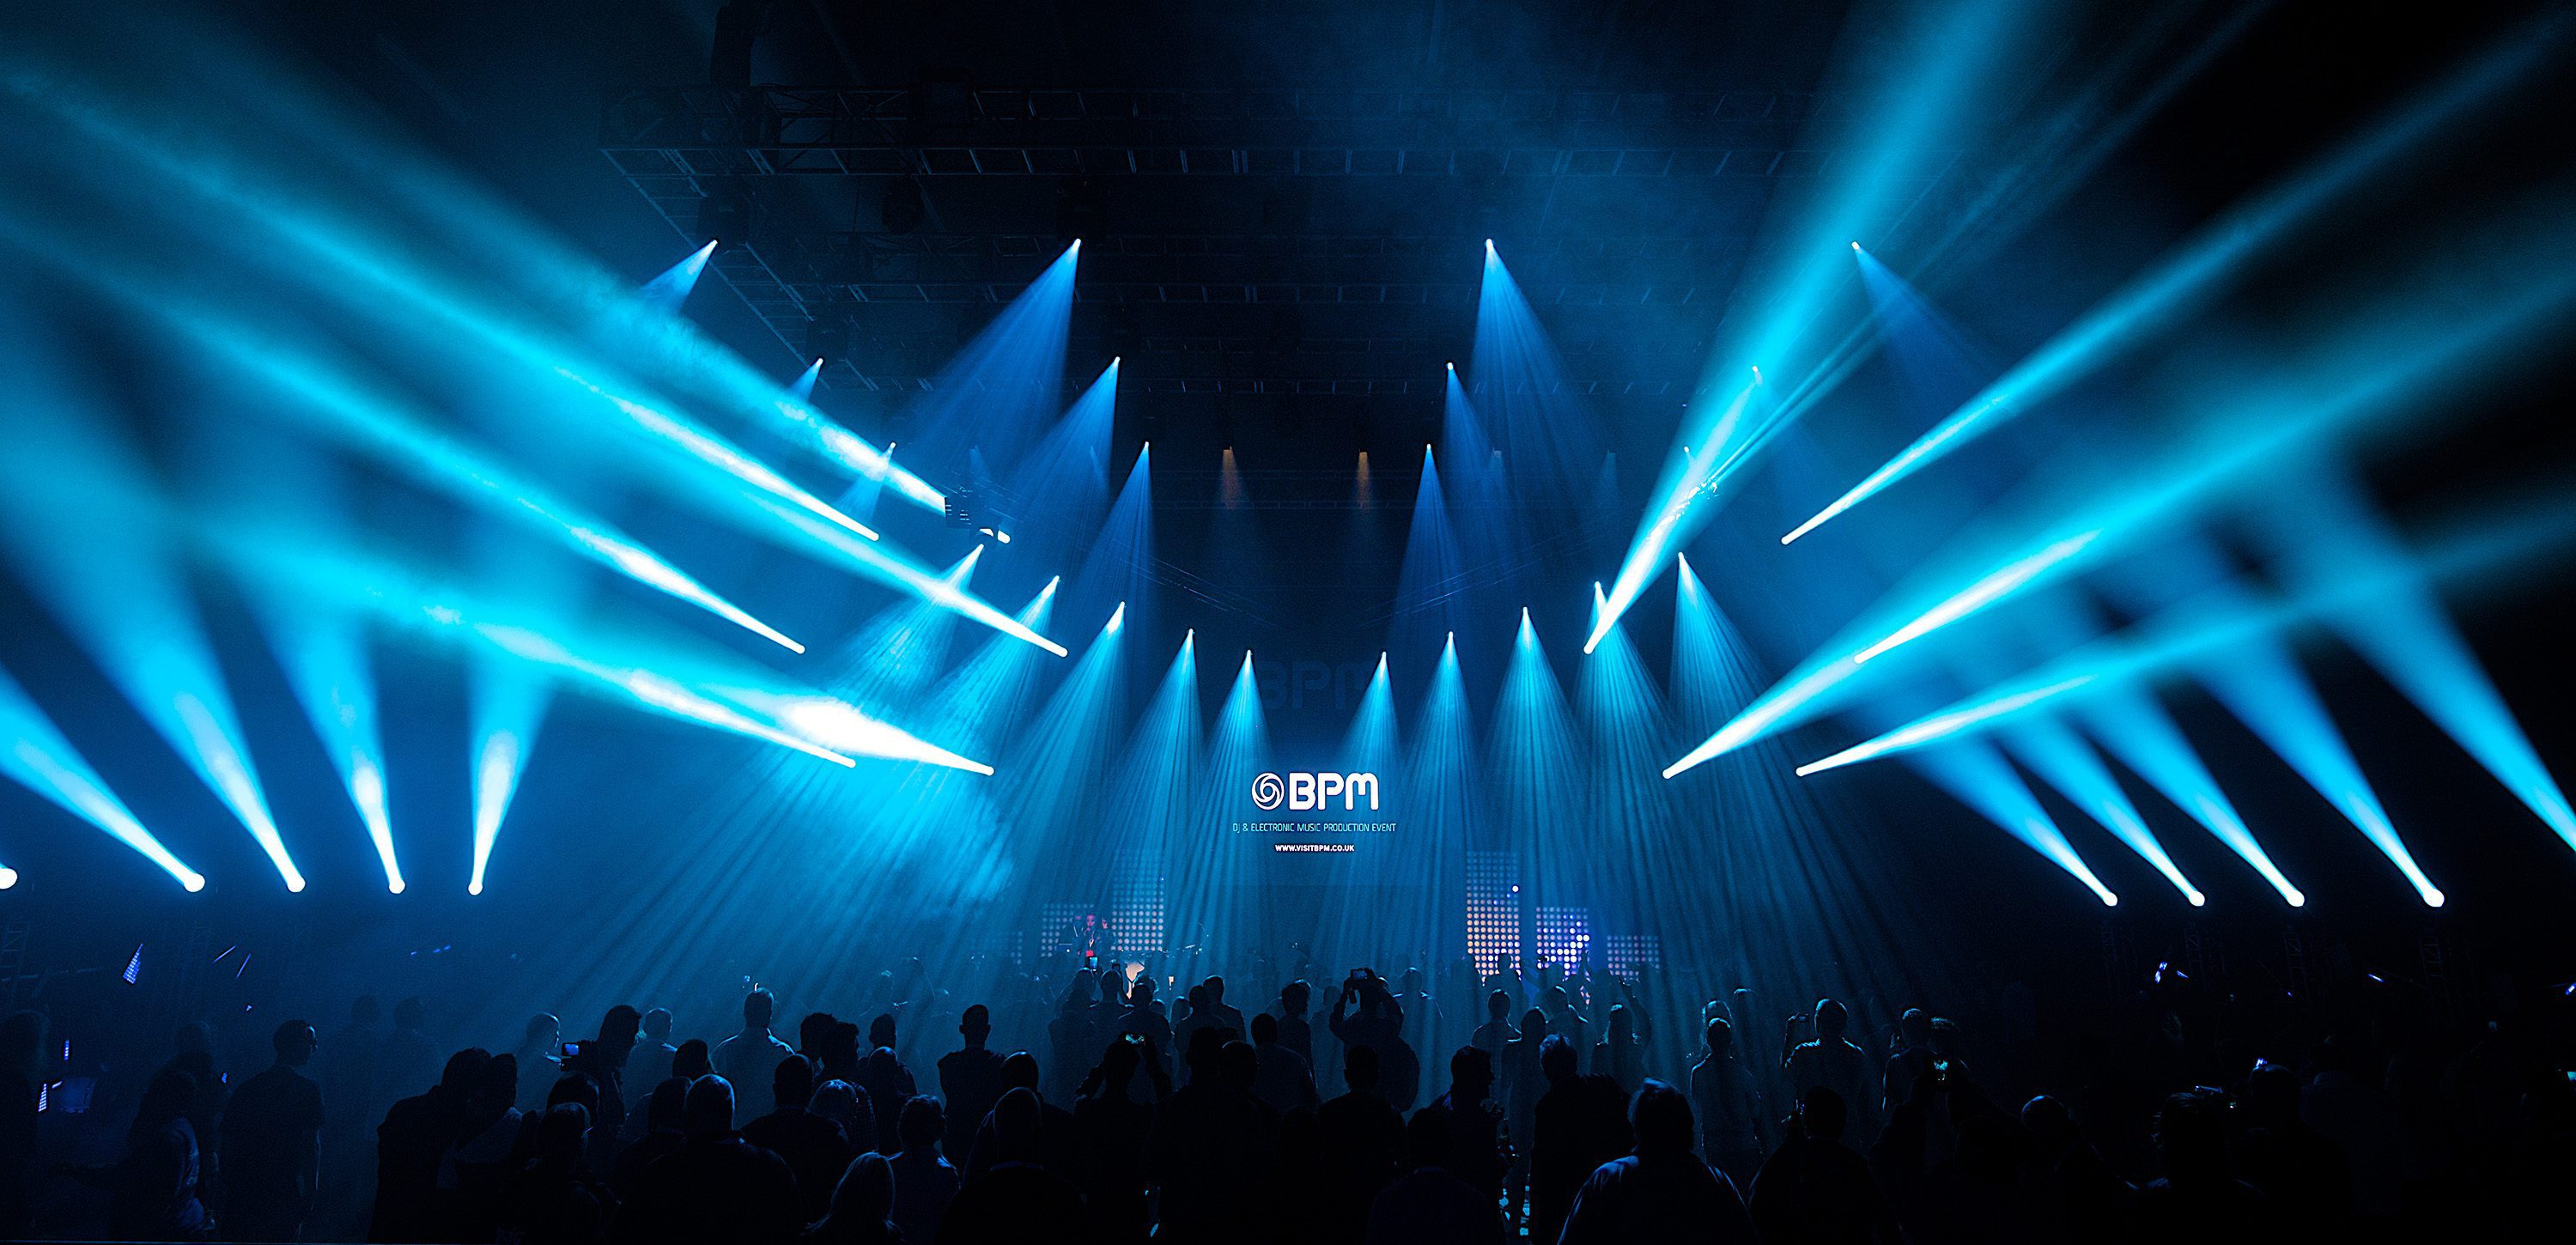 dalai lama design lighting lights chauvet blog the jpg live